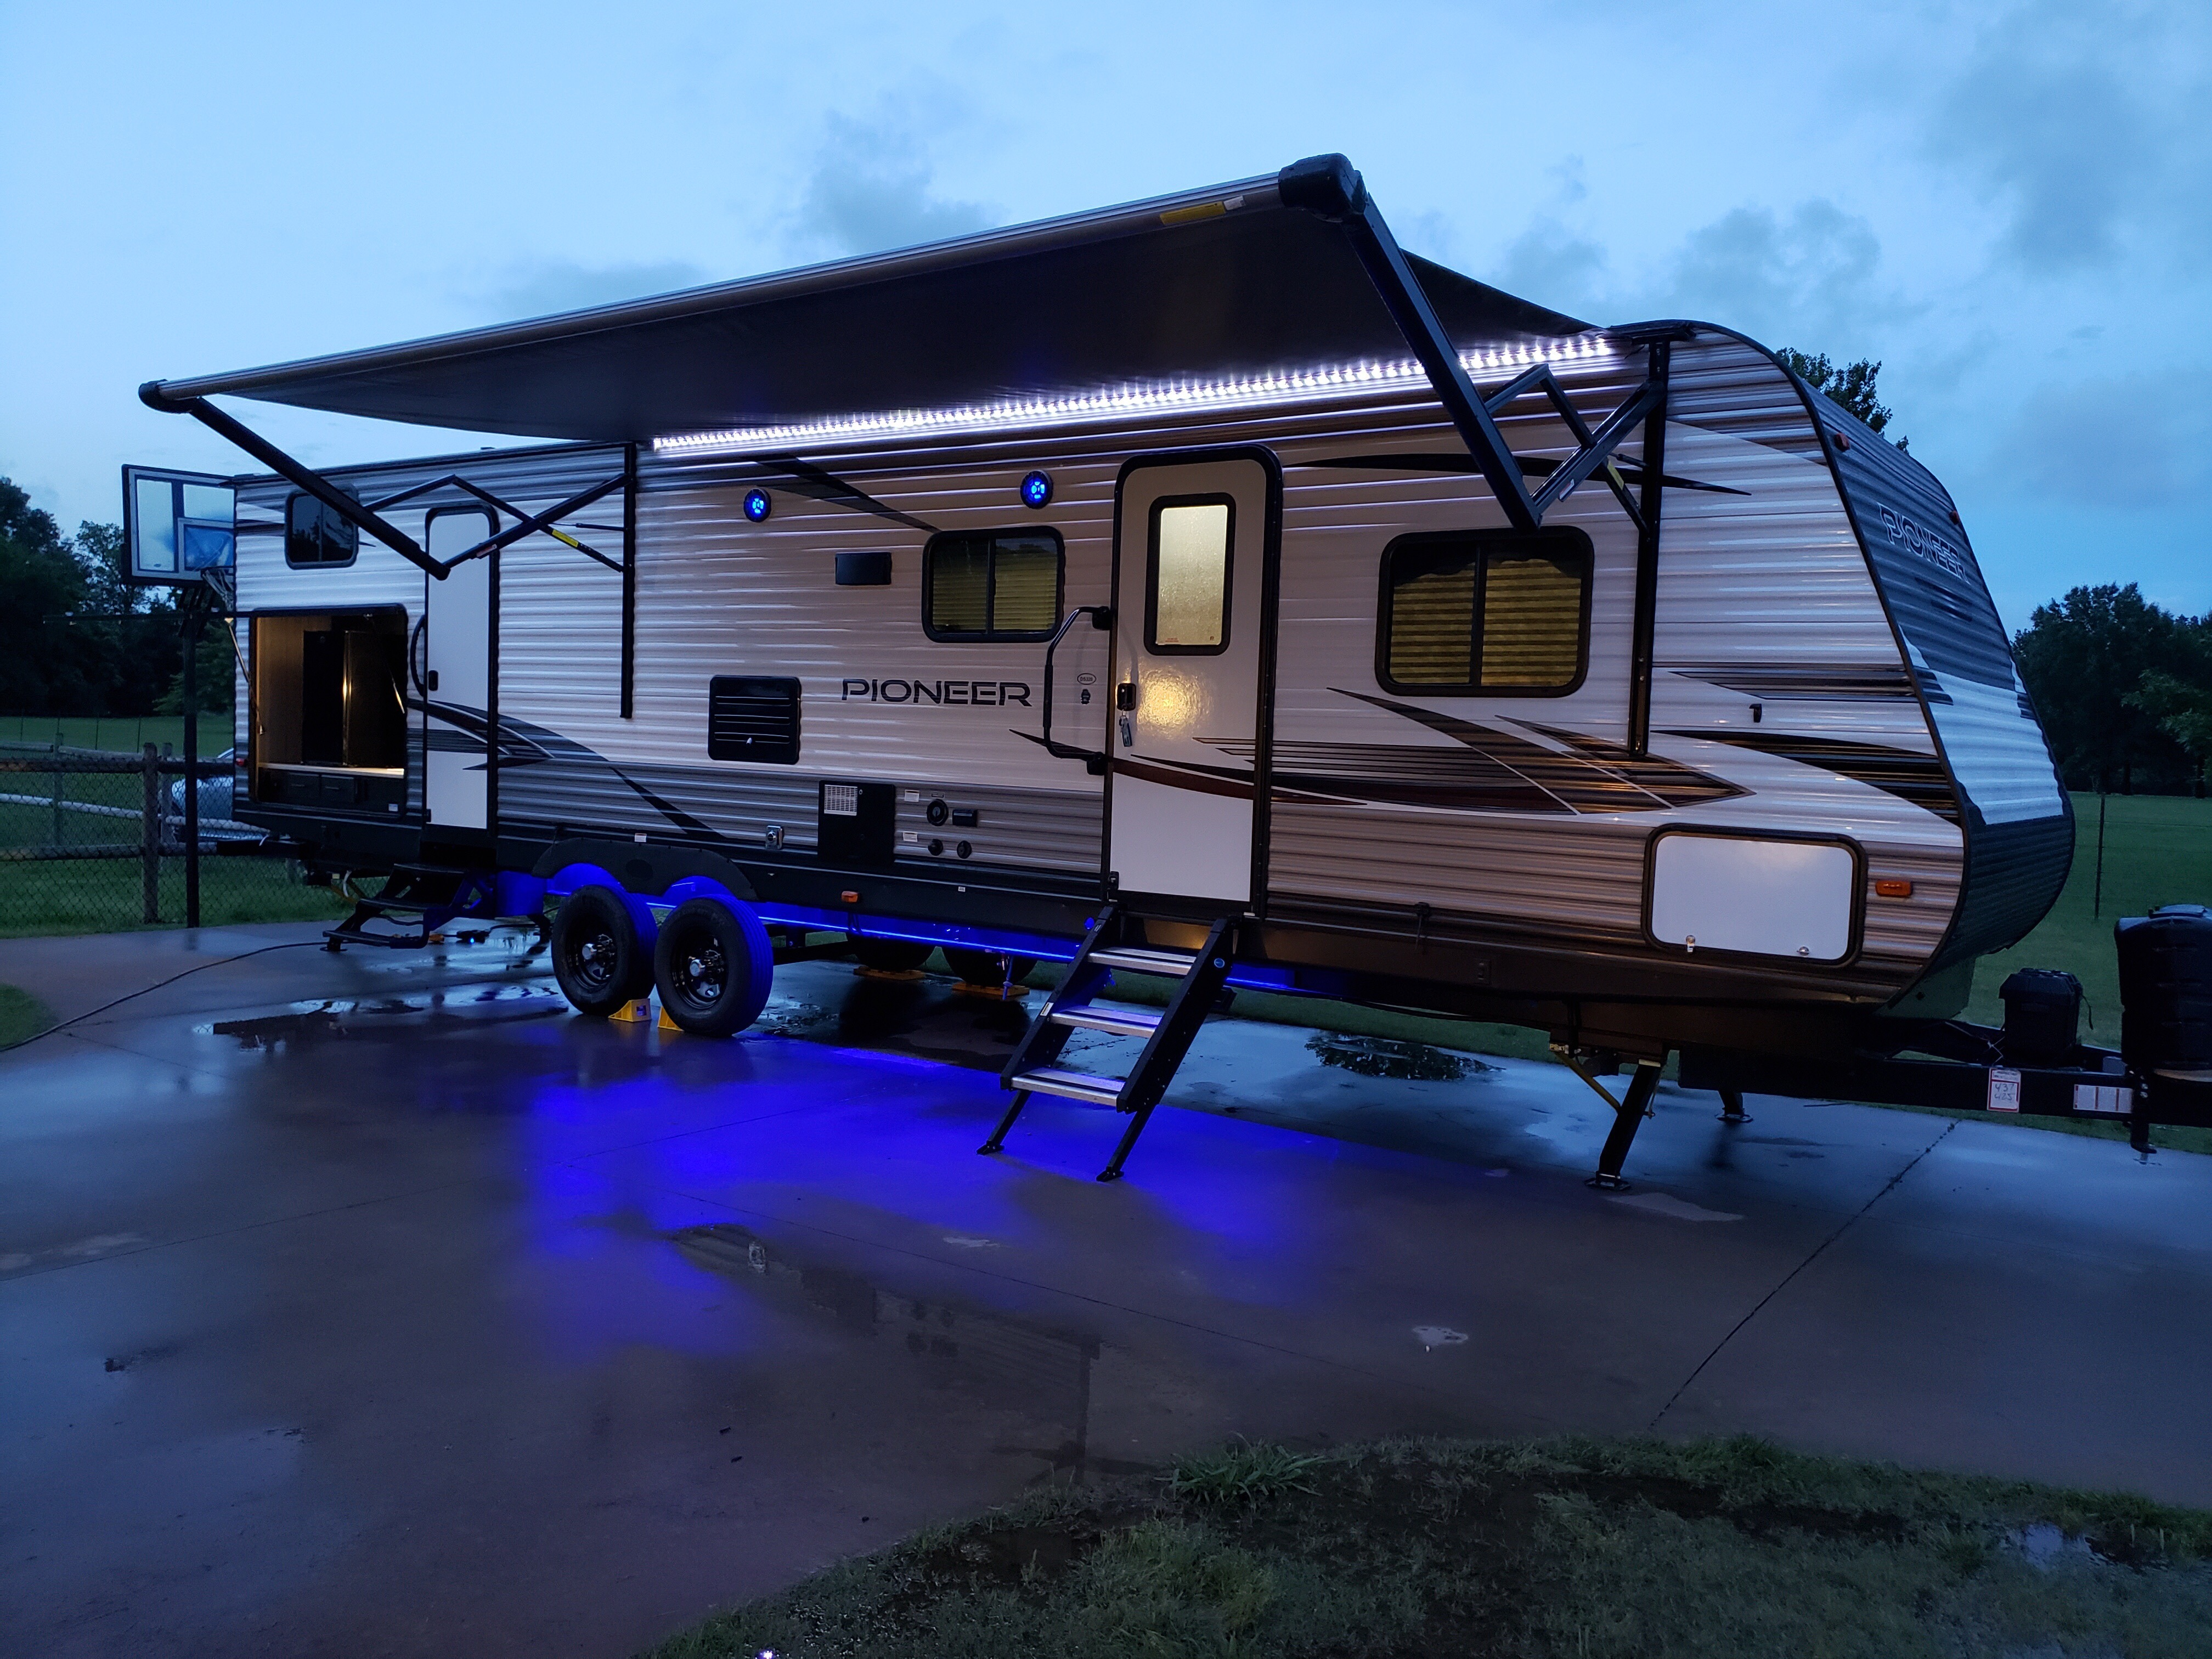 Electric Awning with top and bottom LED lights. Heartland Pioneer 2020